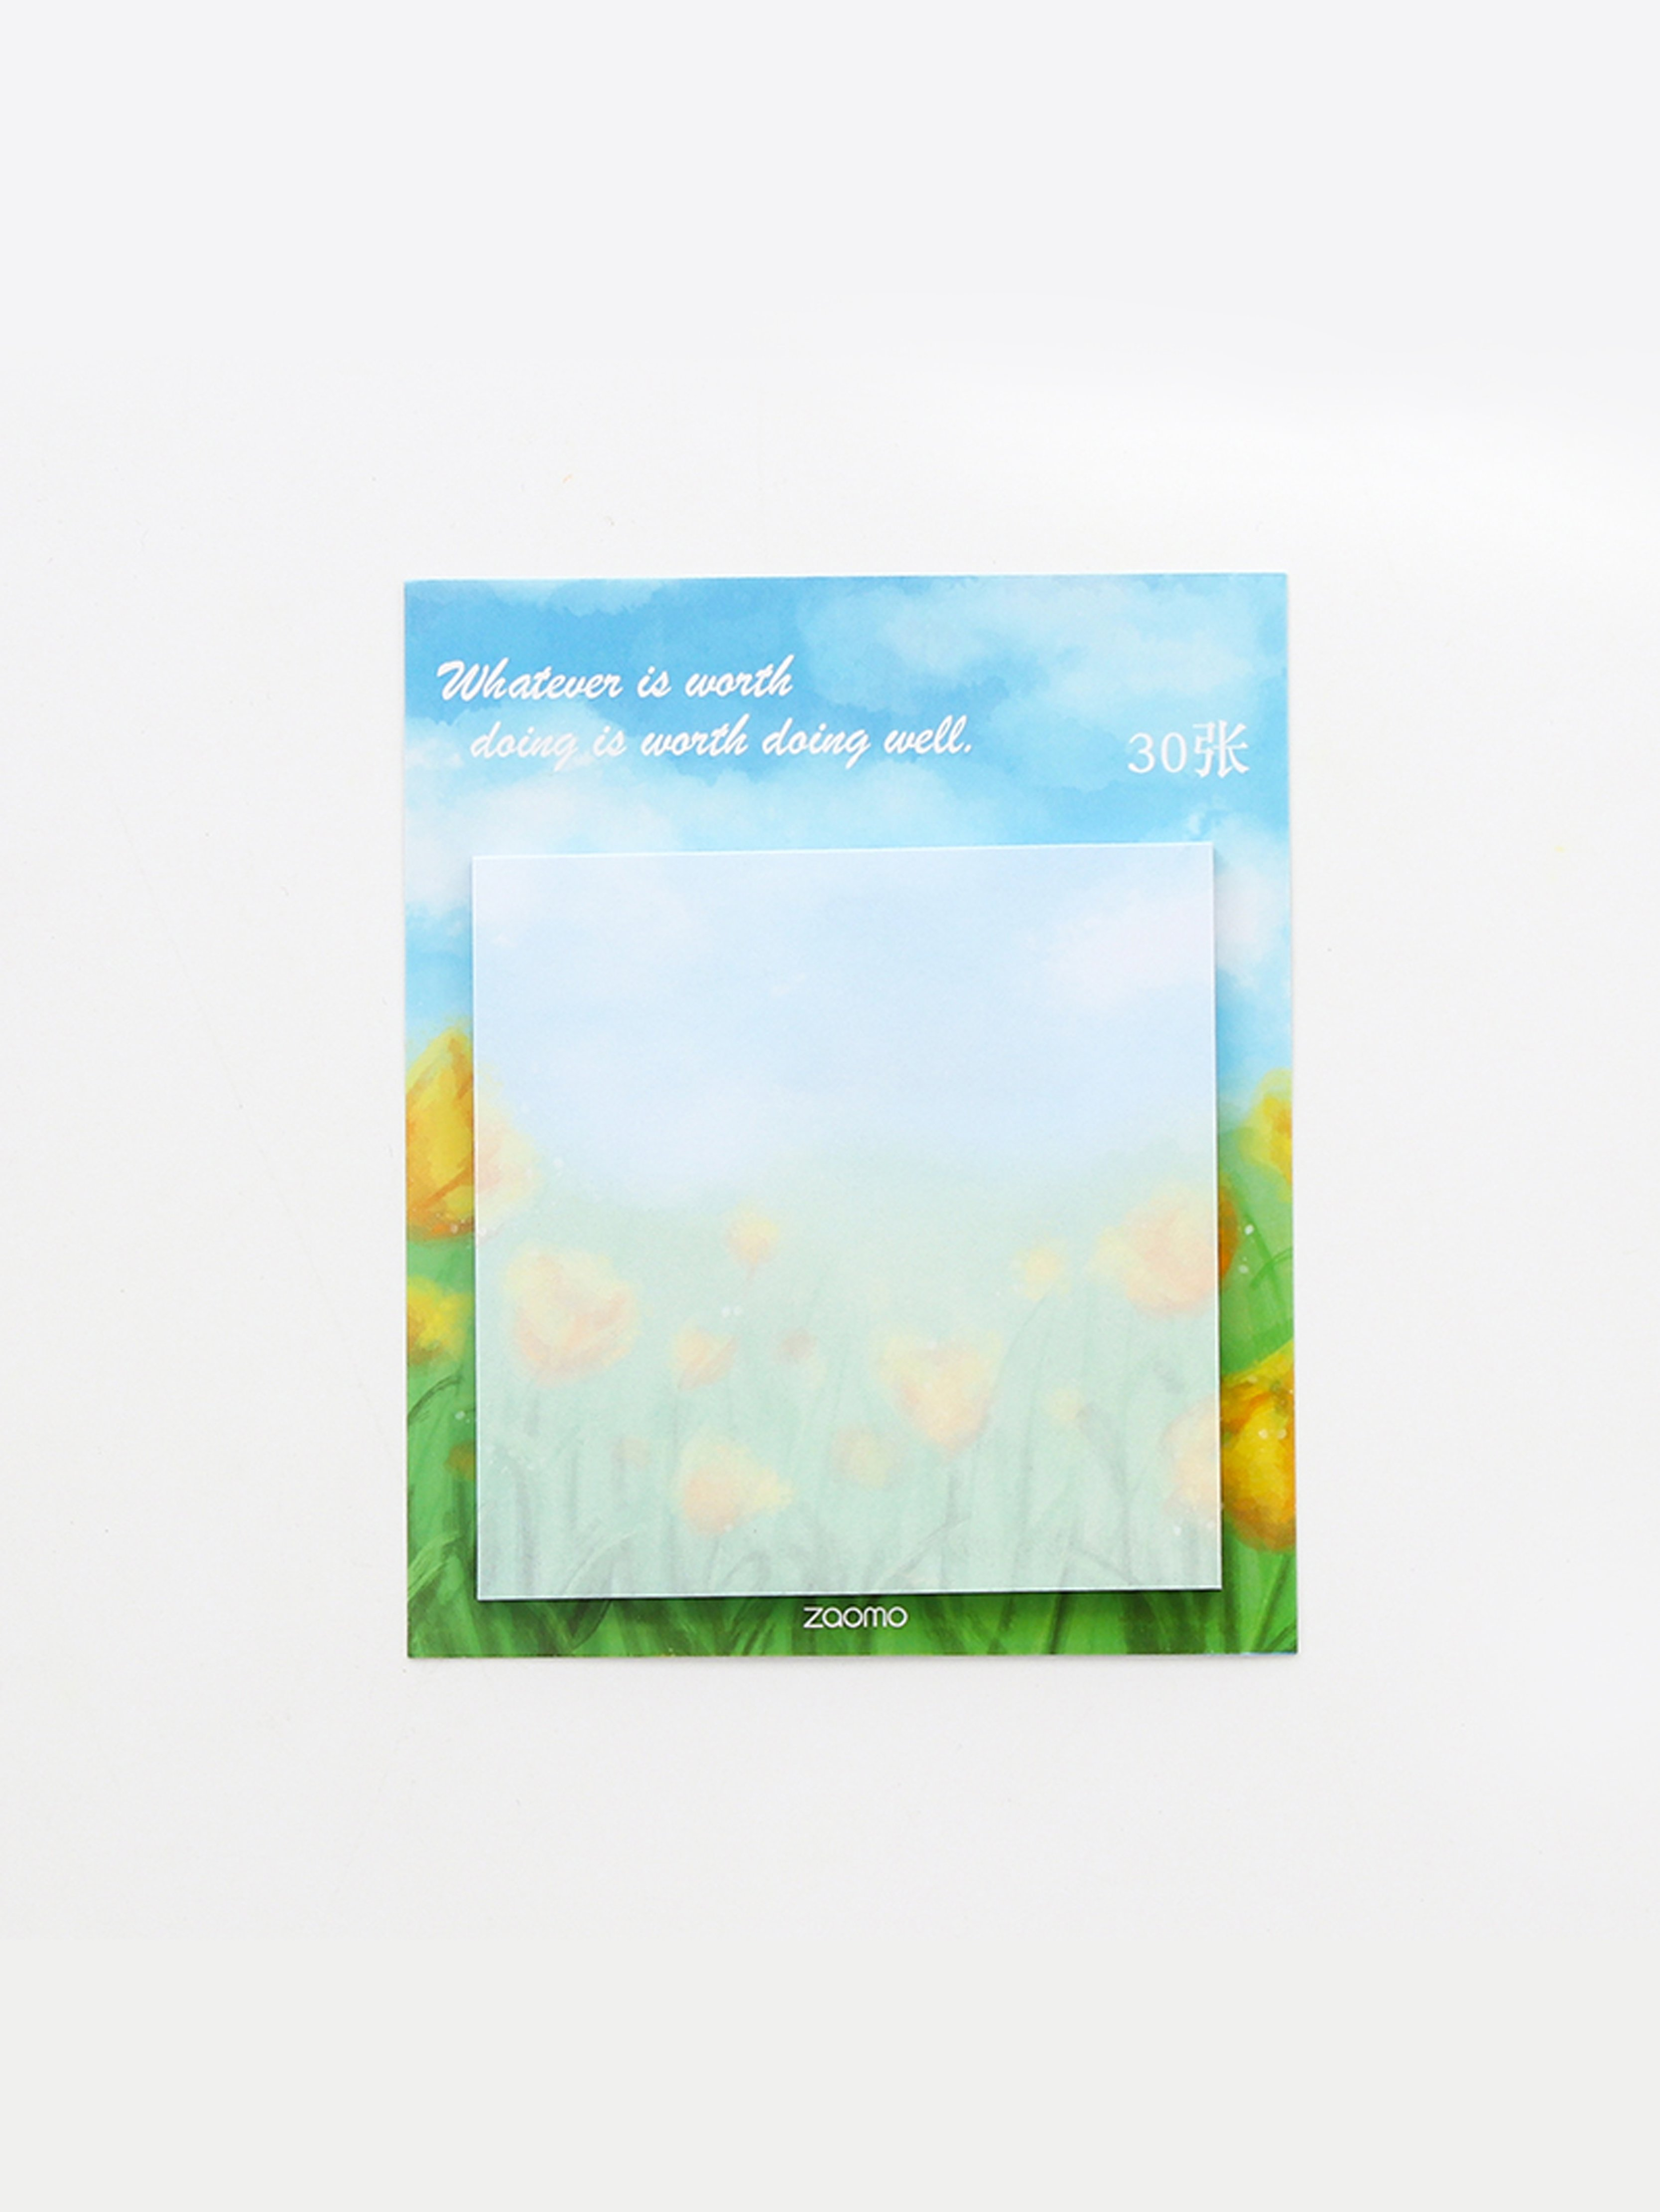 Flower Print Sticky Memo Pad 30sheets never plants series sticky notes sets notepad memo pad flamingo ball pen stationery kits fashion office and school supplies